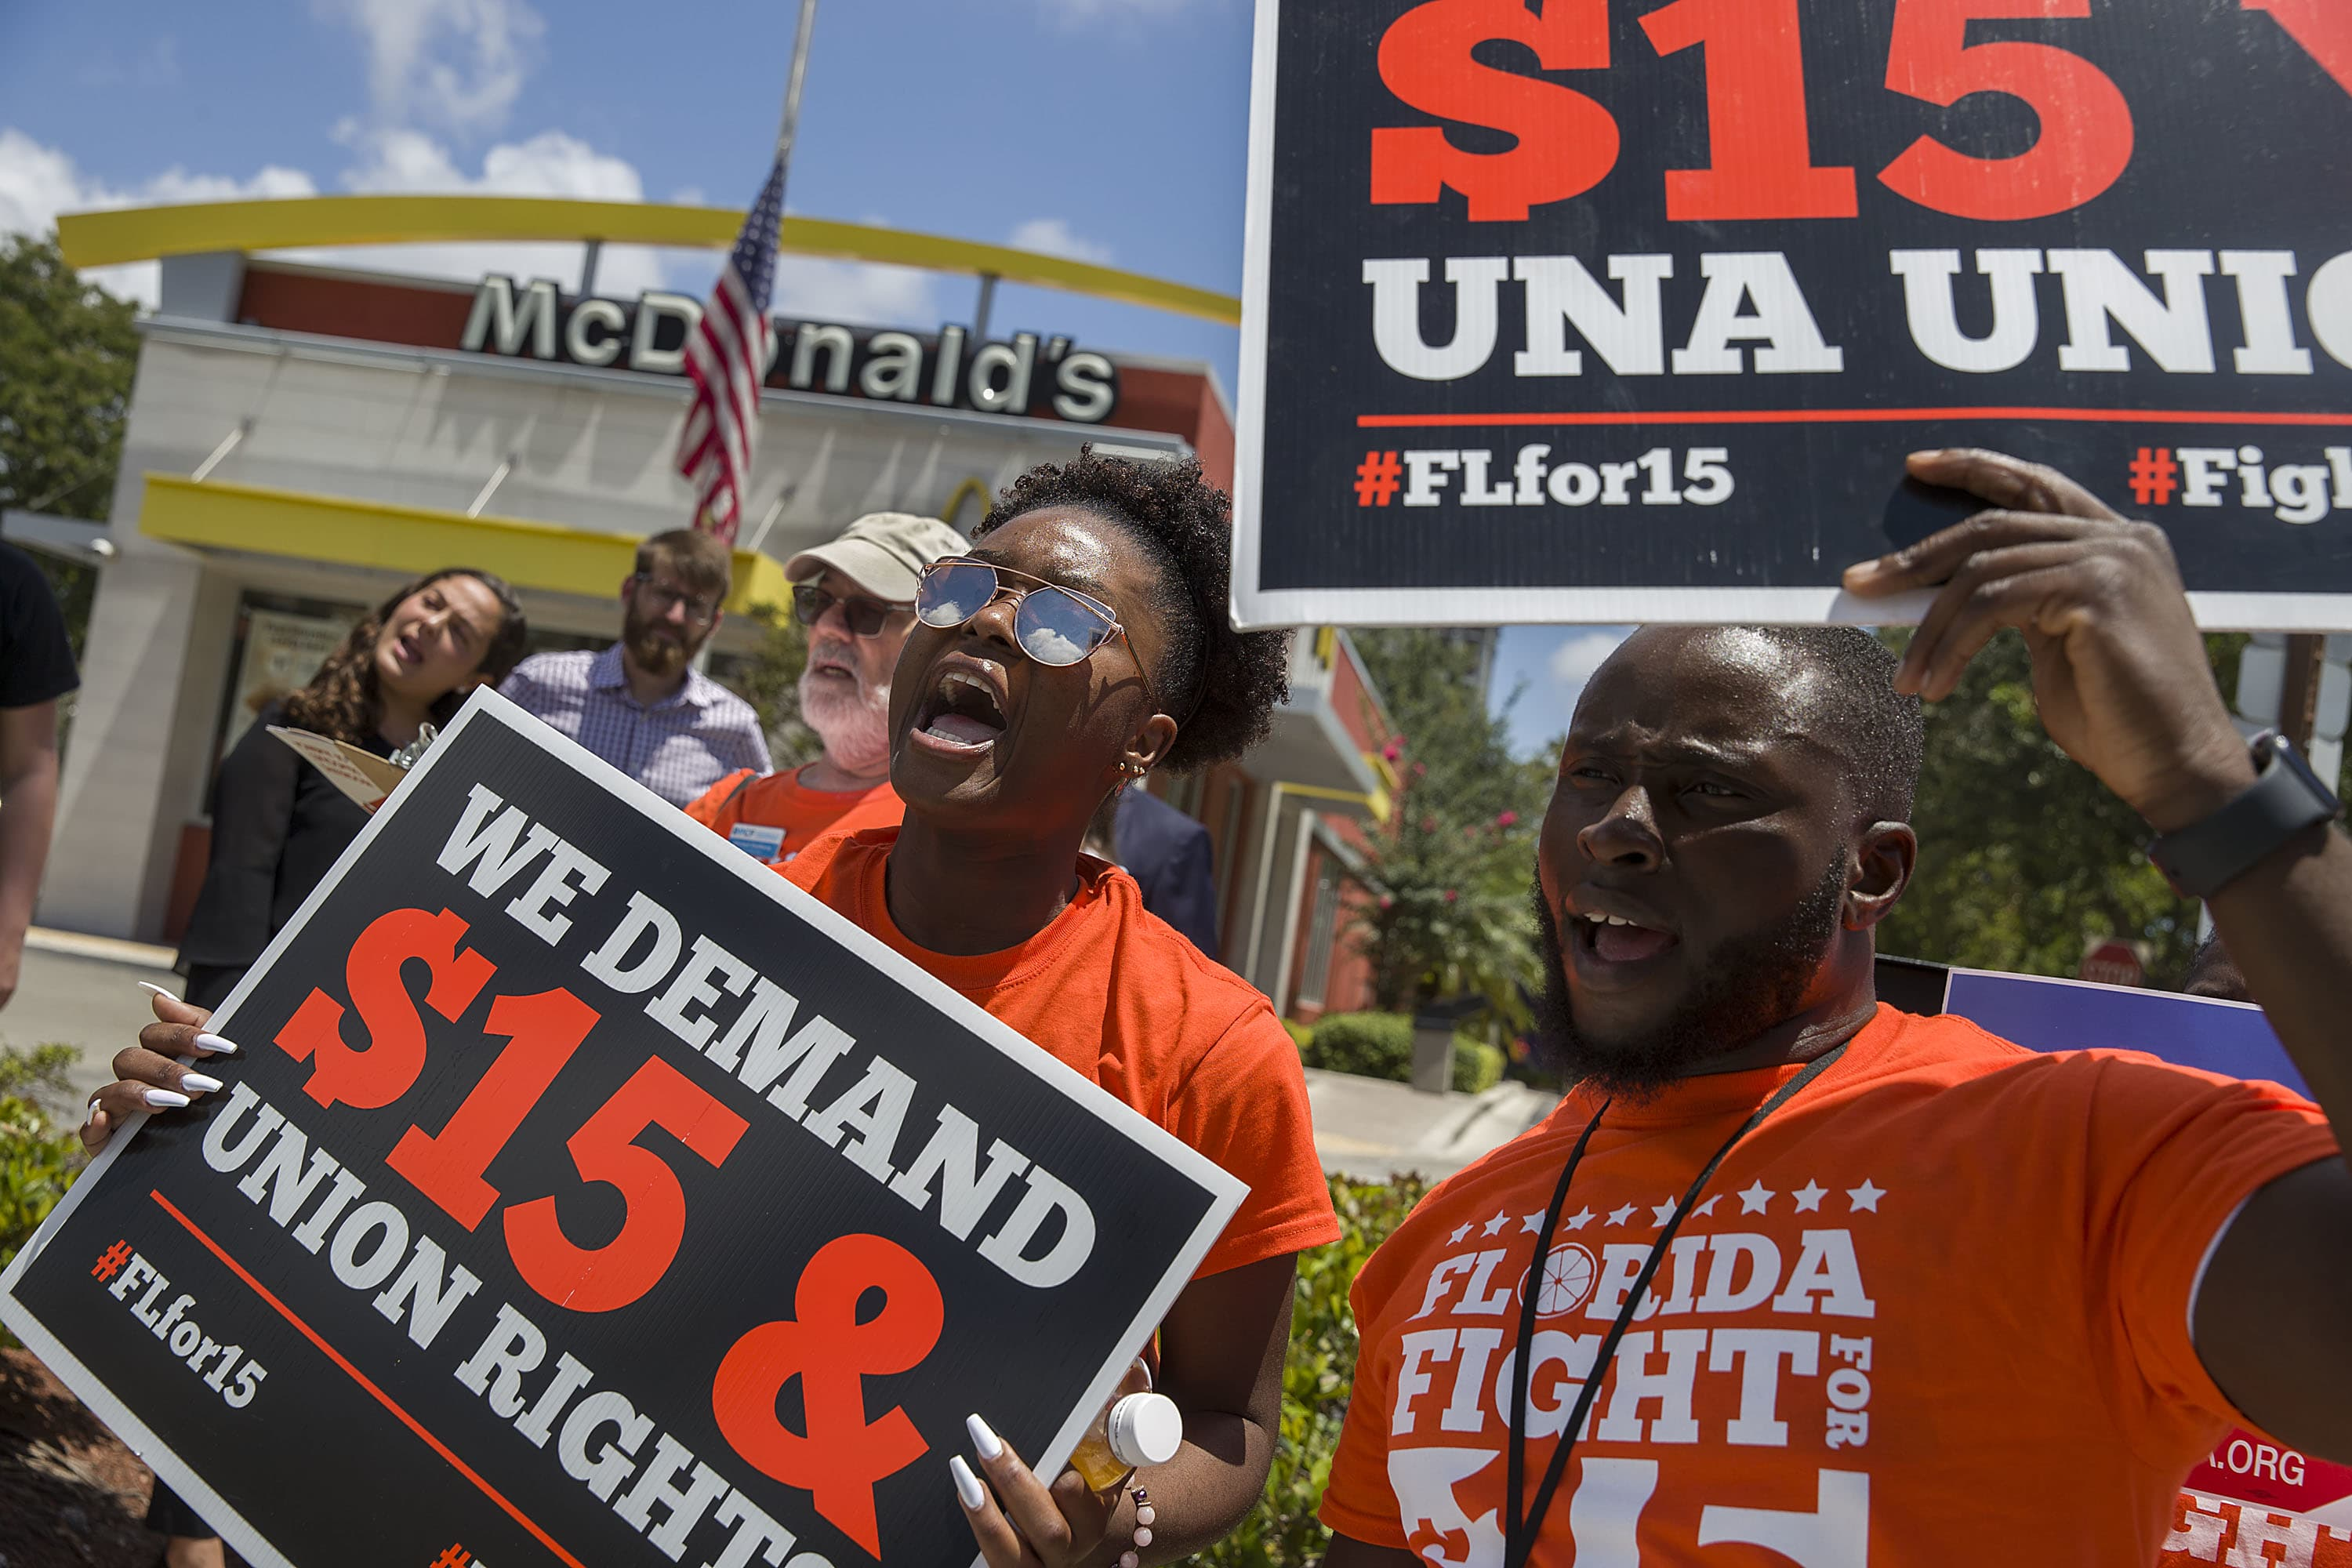 While the U.S. may be closer than ever to a $15 federal minimum wage, the idea still faces stiff opposition